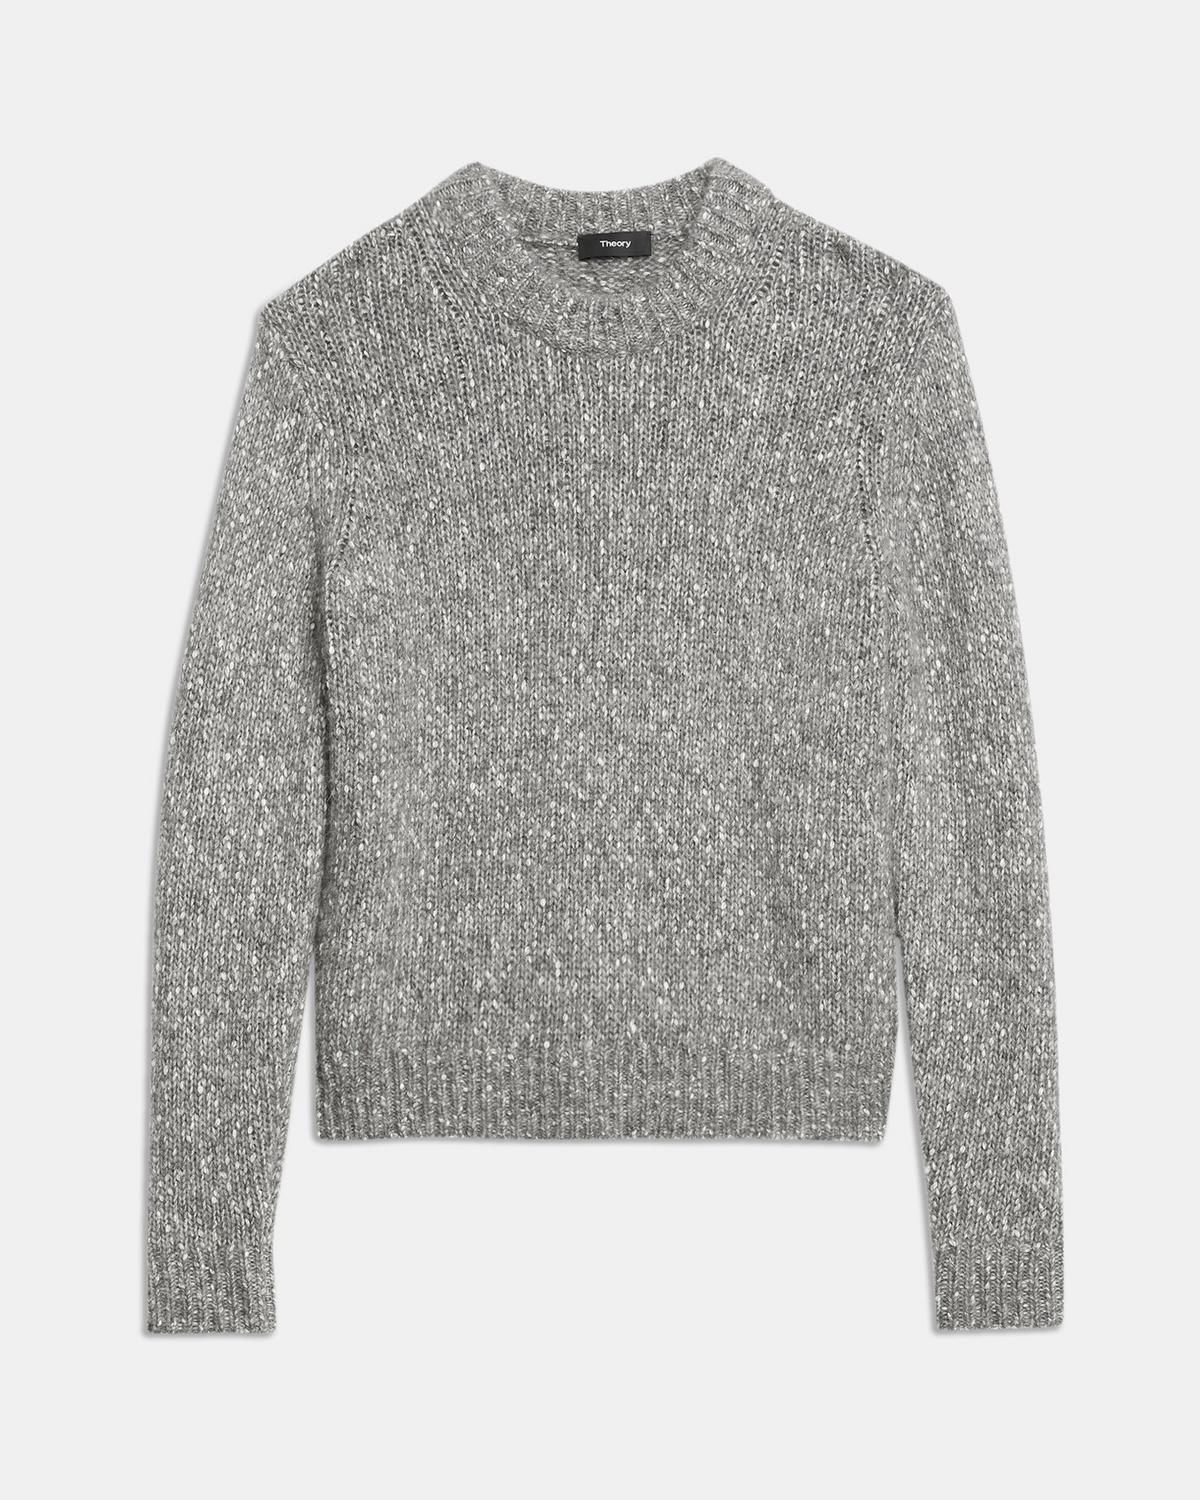 Crewneck Sweater in Alpaca Wool Tweed